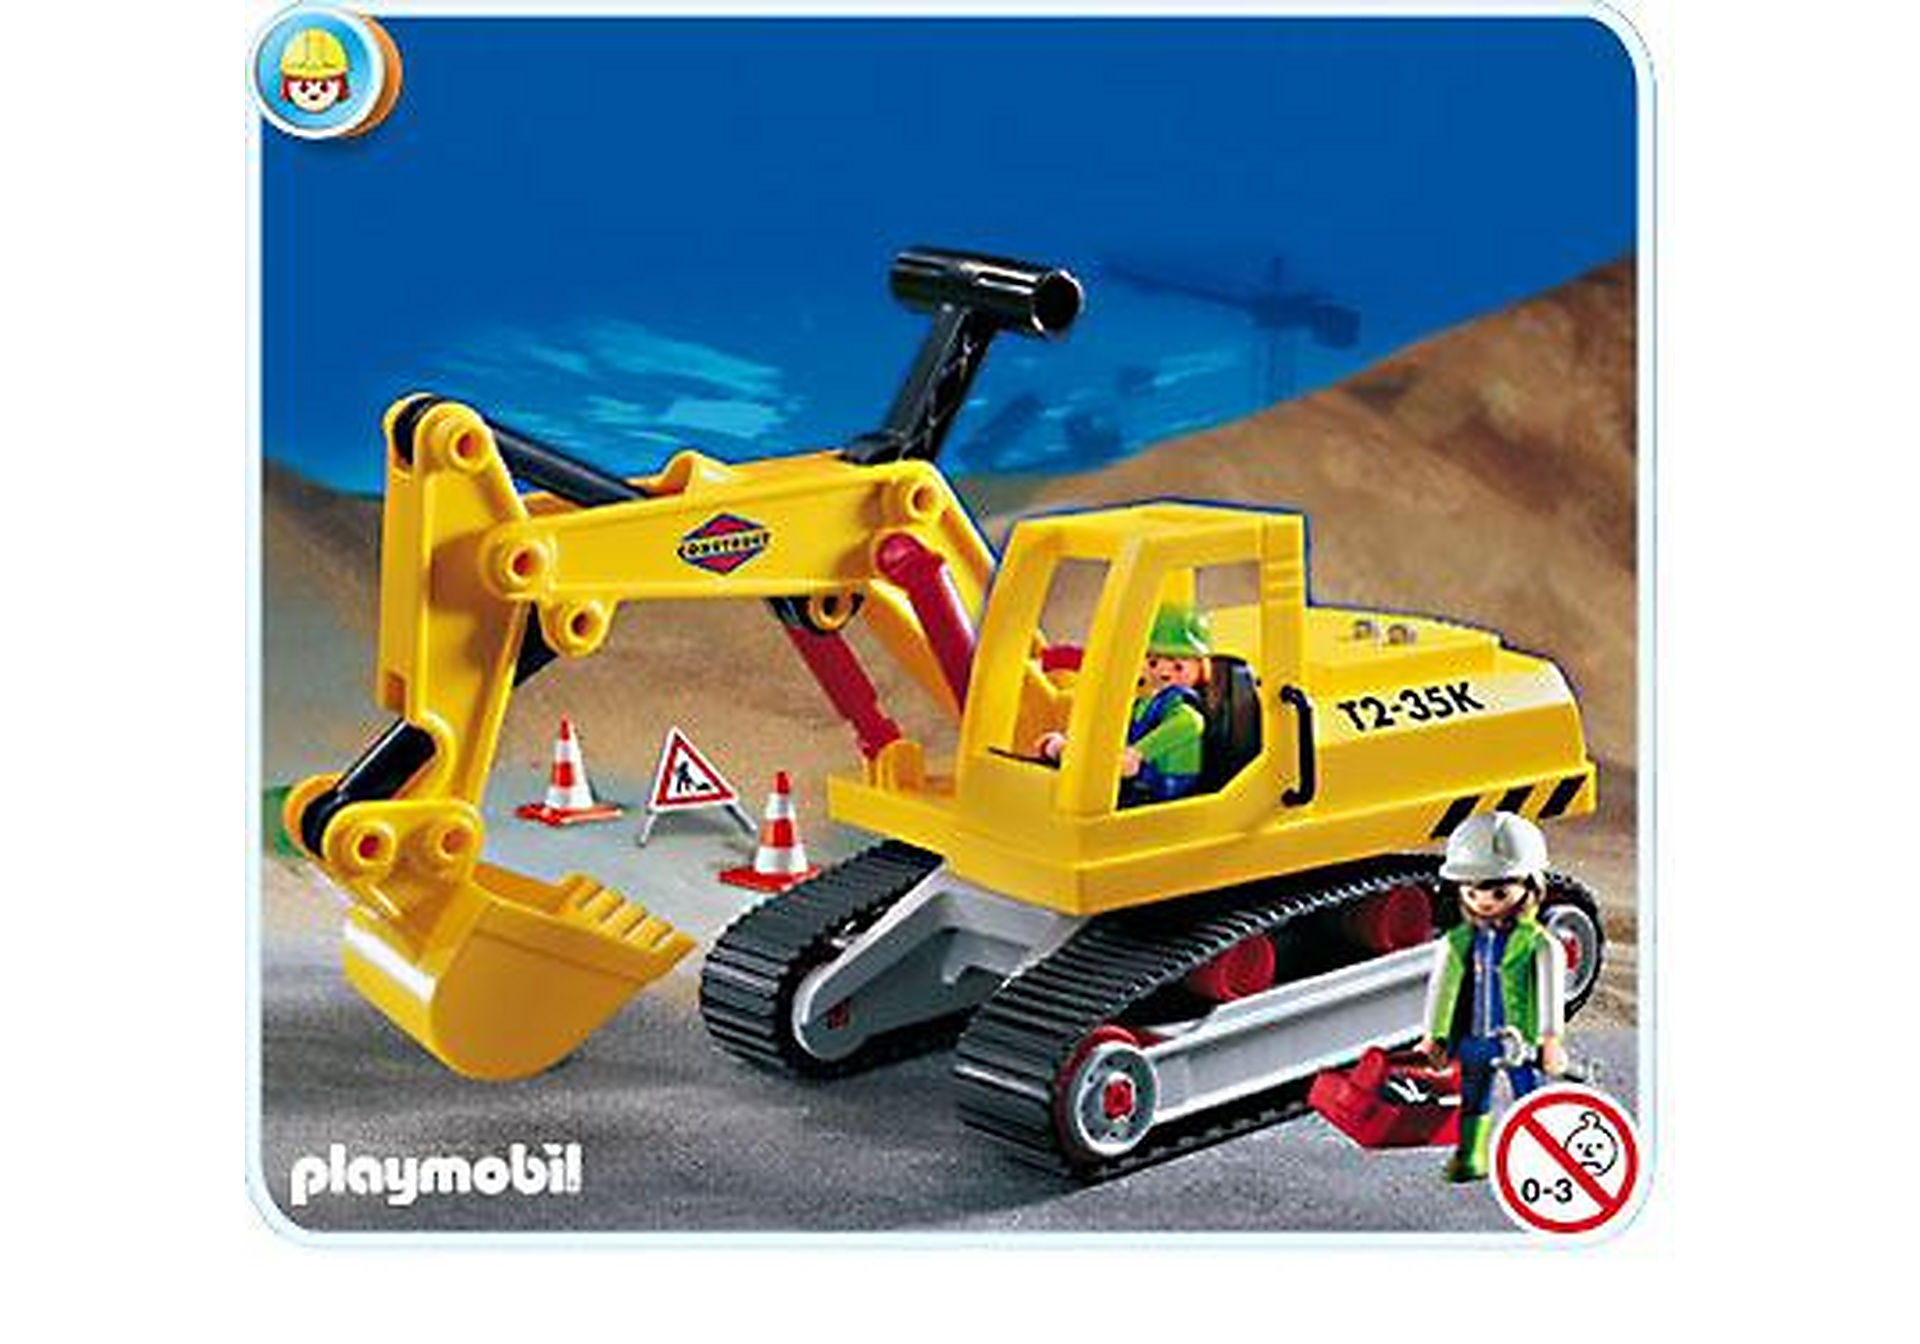 http://media.playmobil.com/i/playmobil/3001-A_product_detail/Baggerlader